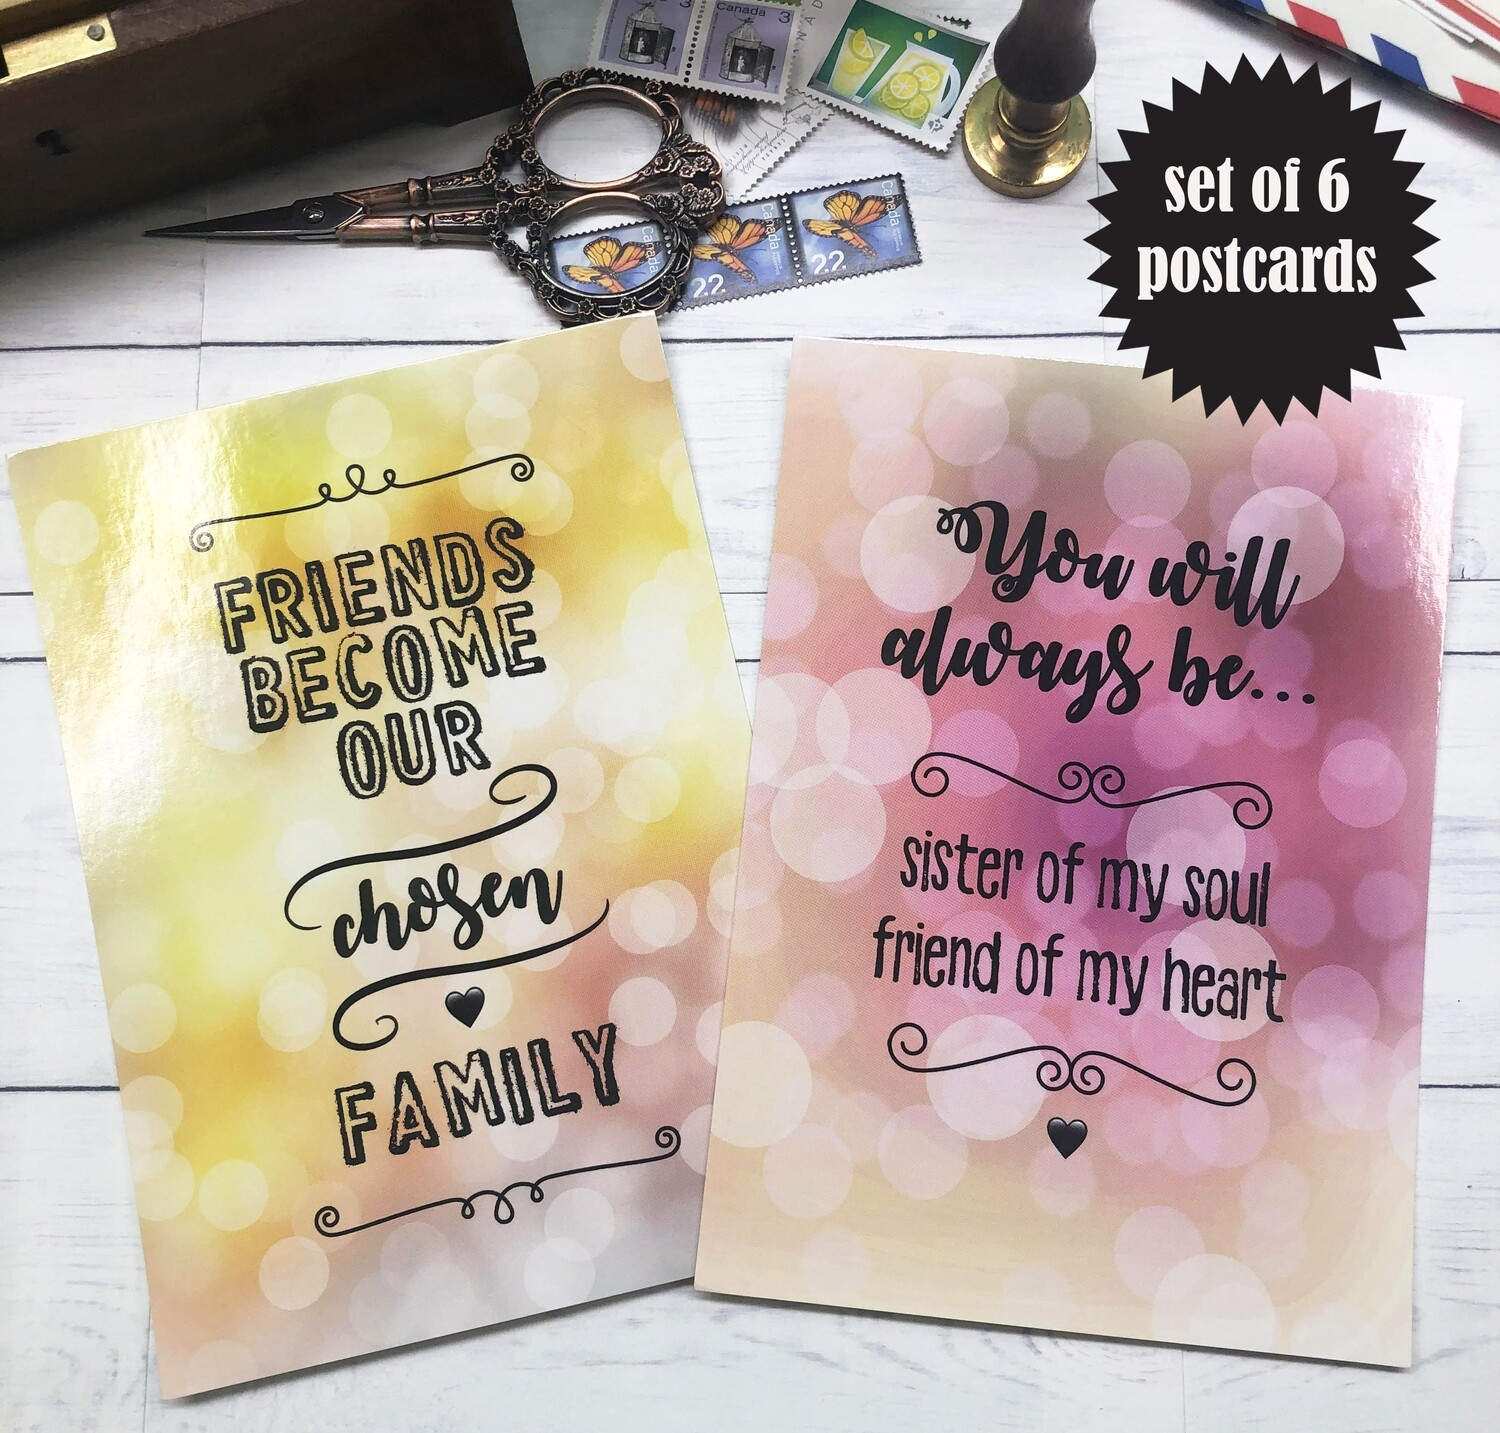 Friendship Postcards